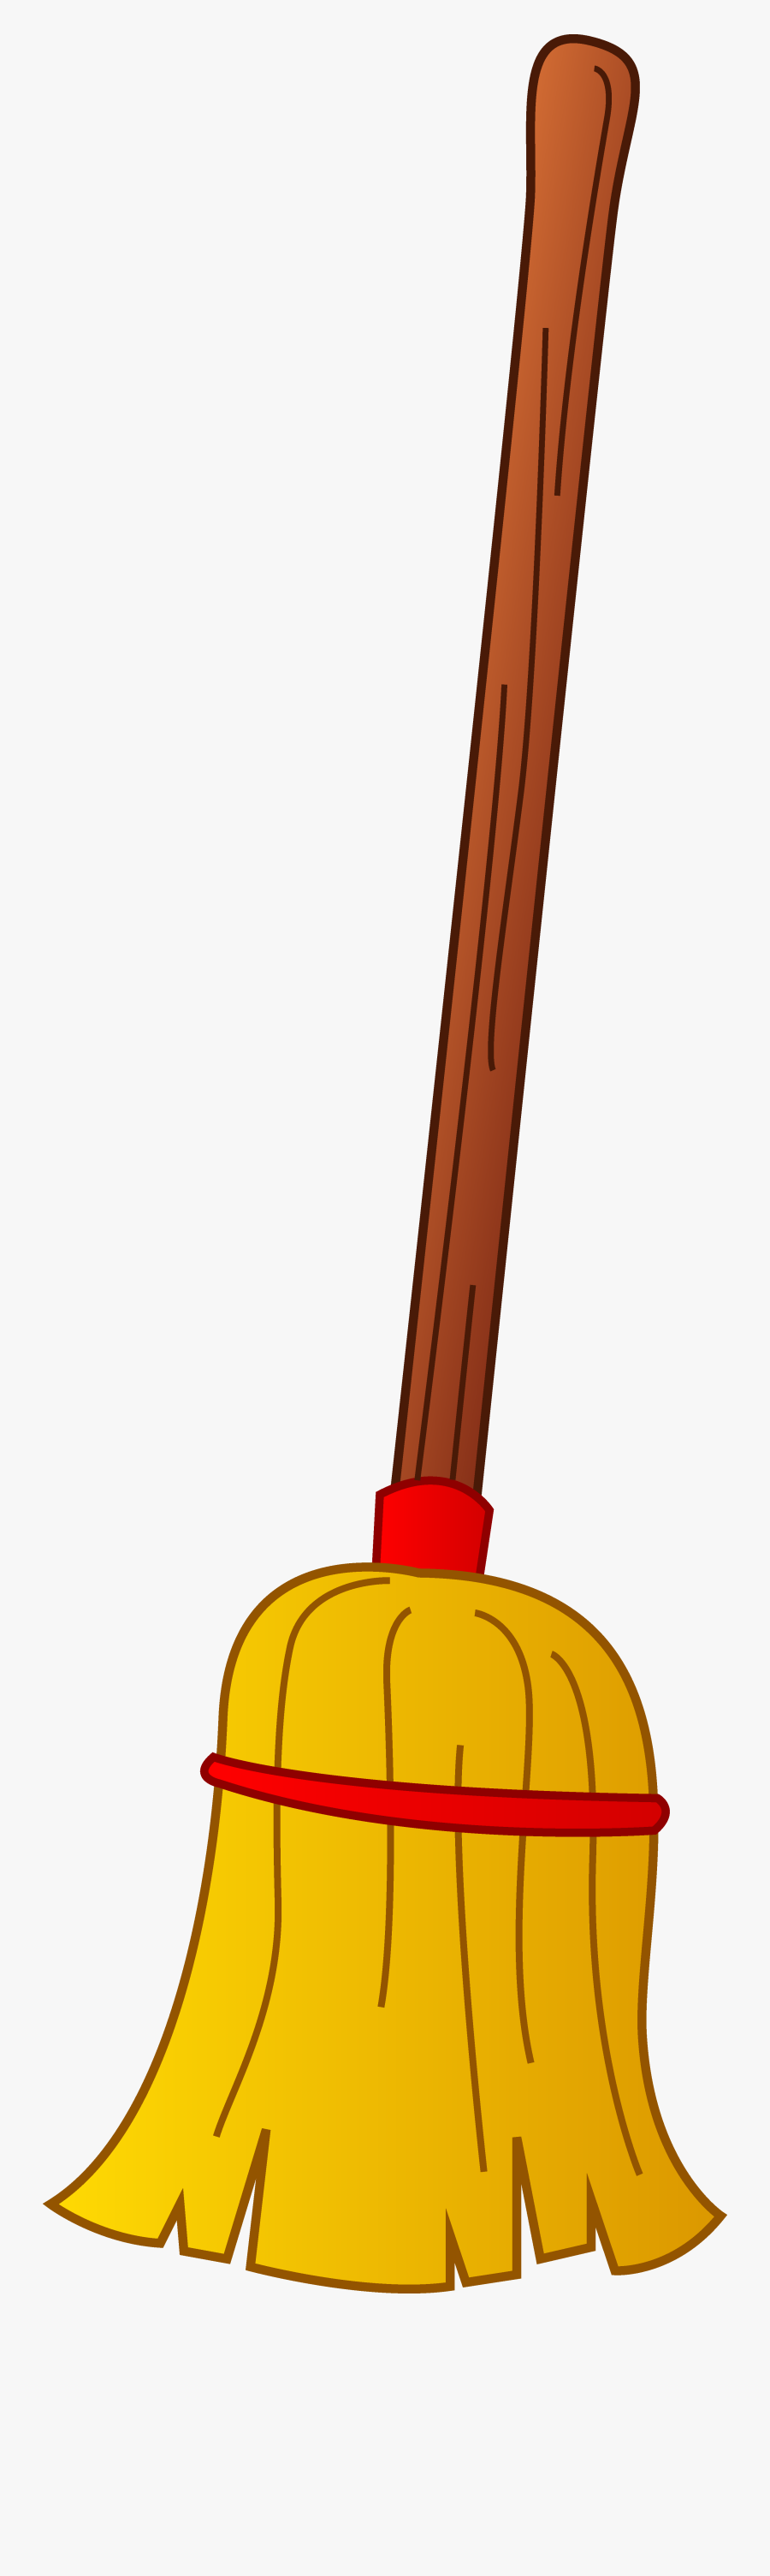 Sweep - Clipart - Broom Clipart, Transparent Clipart